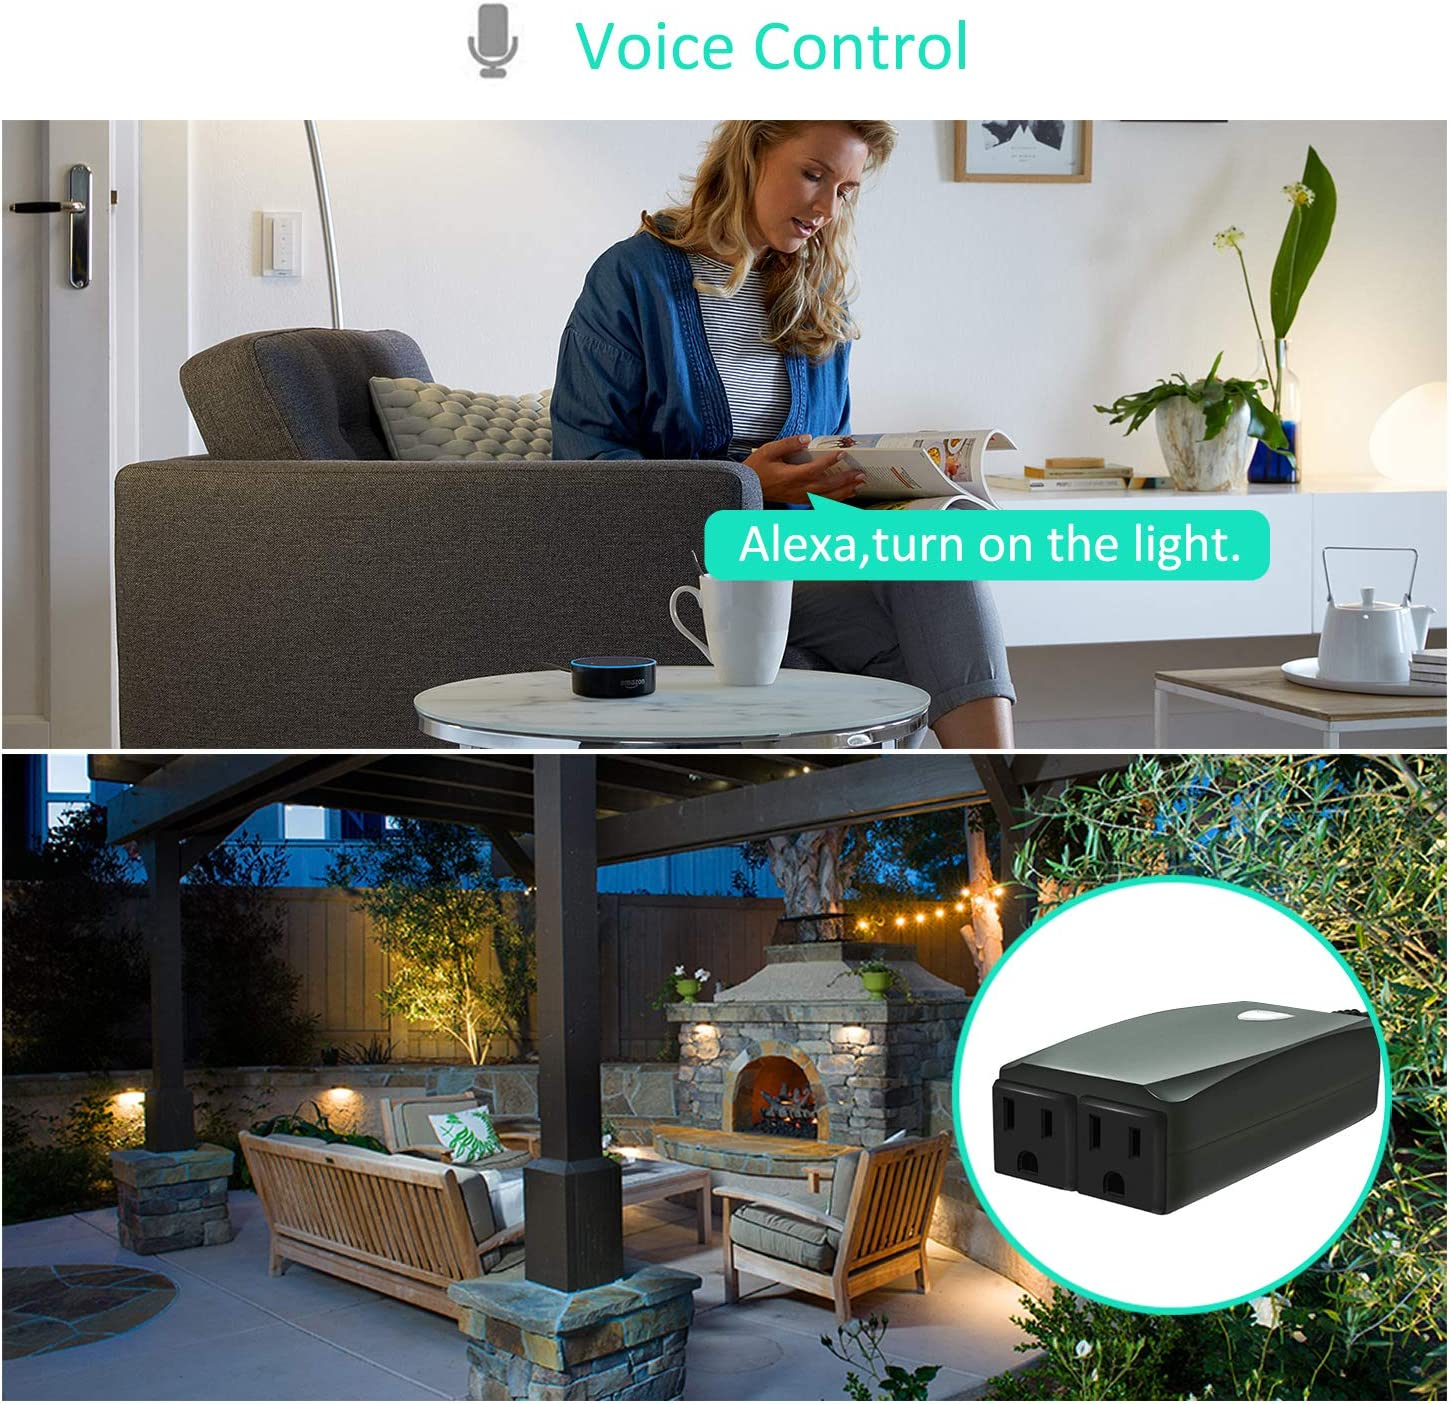 WiFi Outdoor Plug with 2 Sockets,Waterproof Outdoor Smart Outlet,Wireless Remote Control//Timer,Compatible with Alexa,Google Home,Only Support 2.4GHz Wi-Fi Outdoor Smart Plug